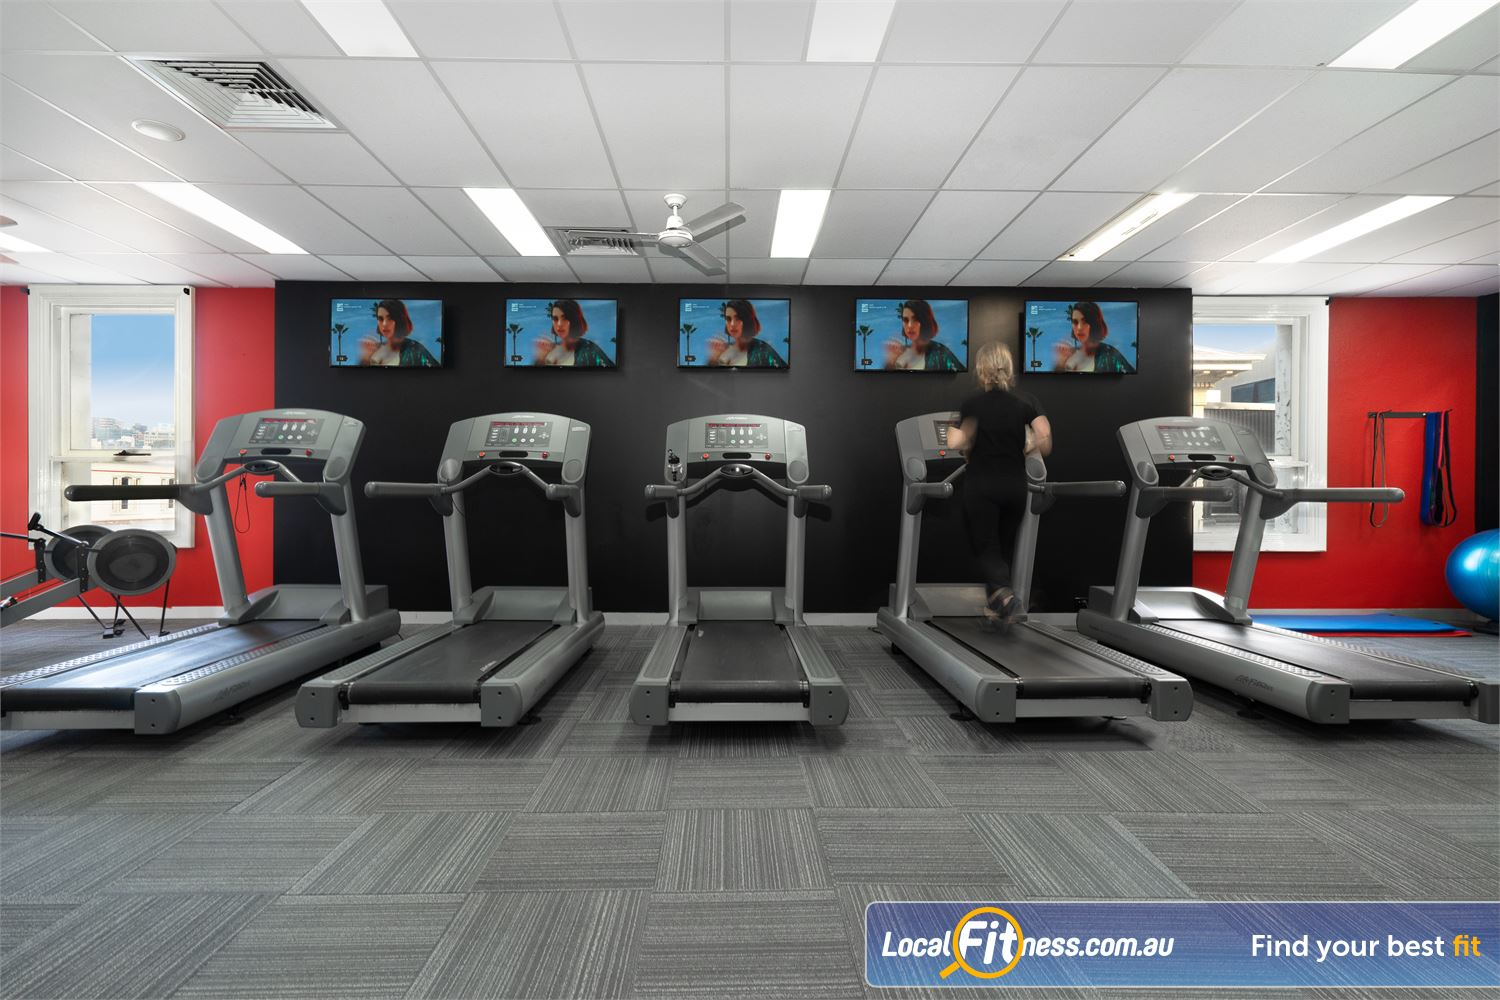 Equilibrium Health & Fitness 24/7 Near Carlton North Our North Melbourne 24/7 Gym includes state of the art cardio machines